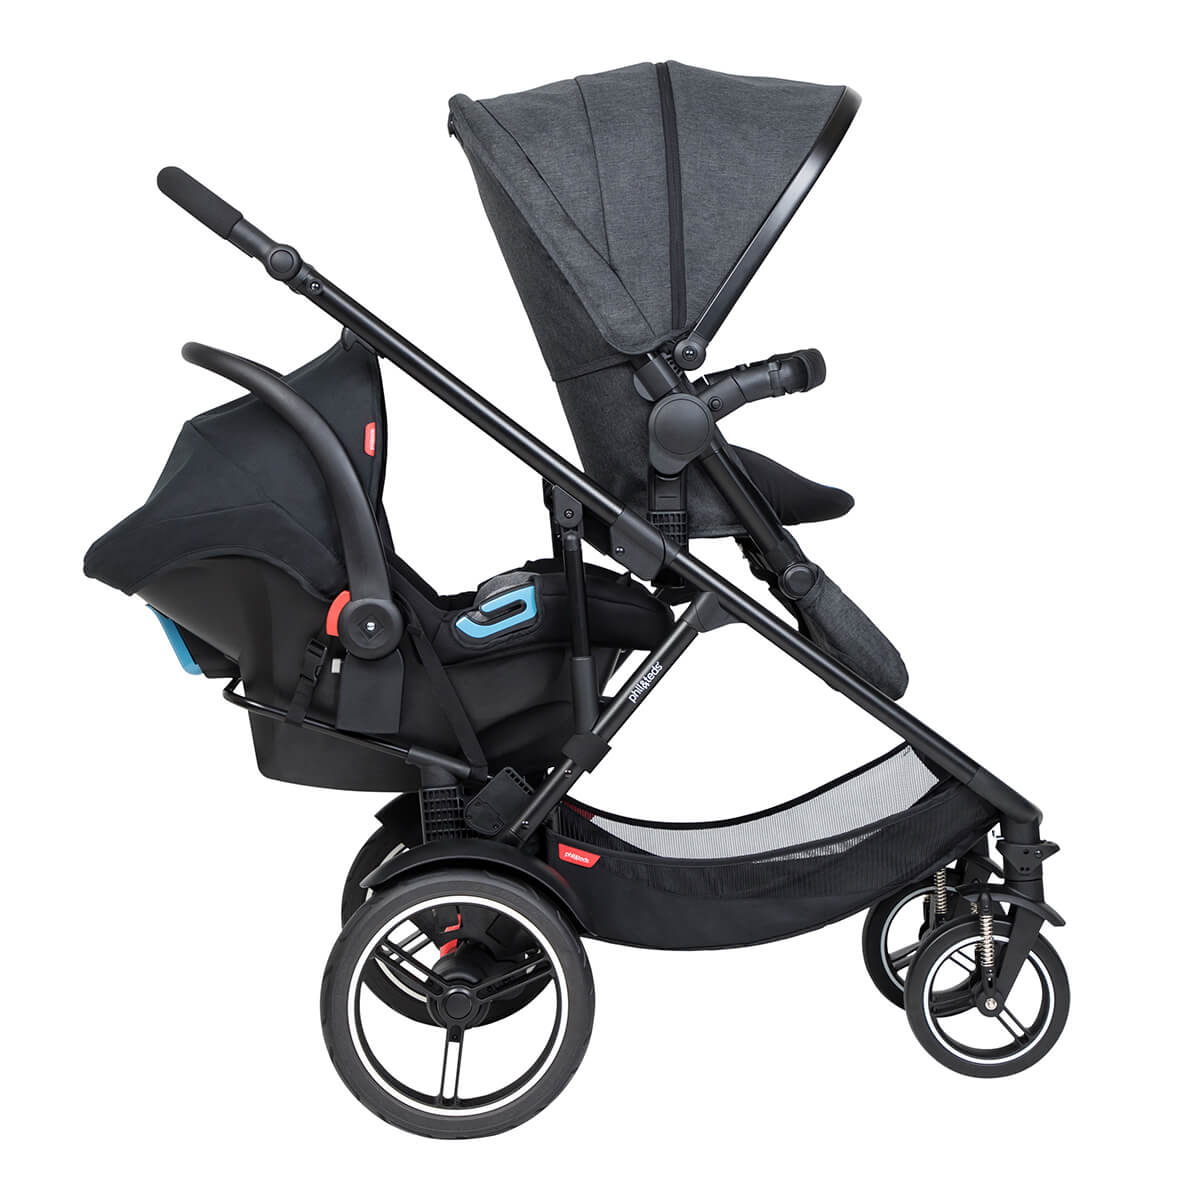 https://cdn.accentuate.io/4509913579597/19466204250306/philteds-voyager-buggy-in-forward-facing-mode-with-travel-system-in-the-rear-v1626485629386.jpg?1200x1200